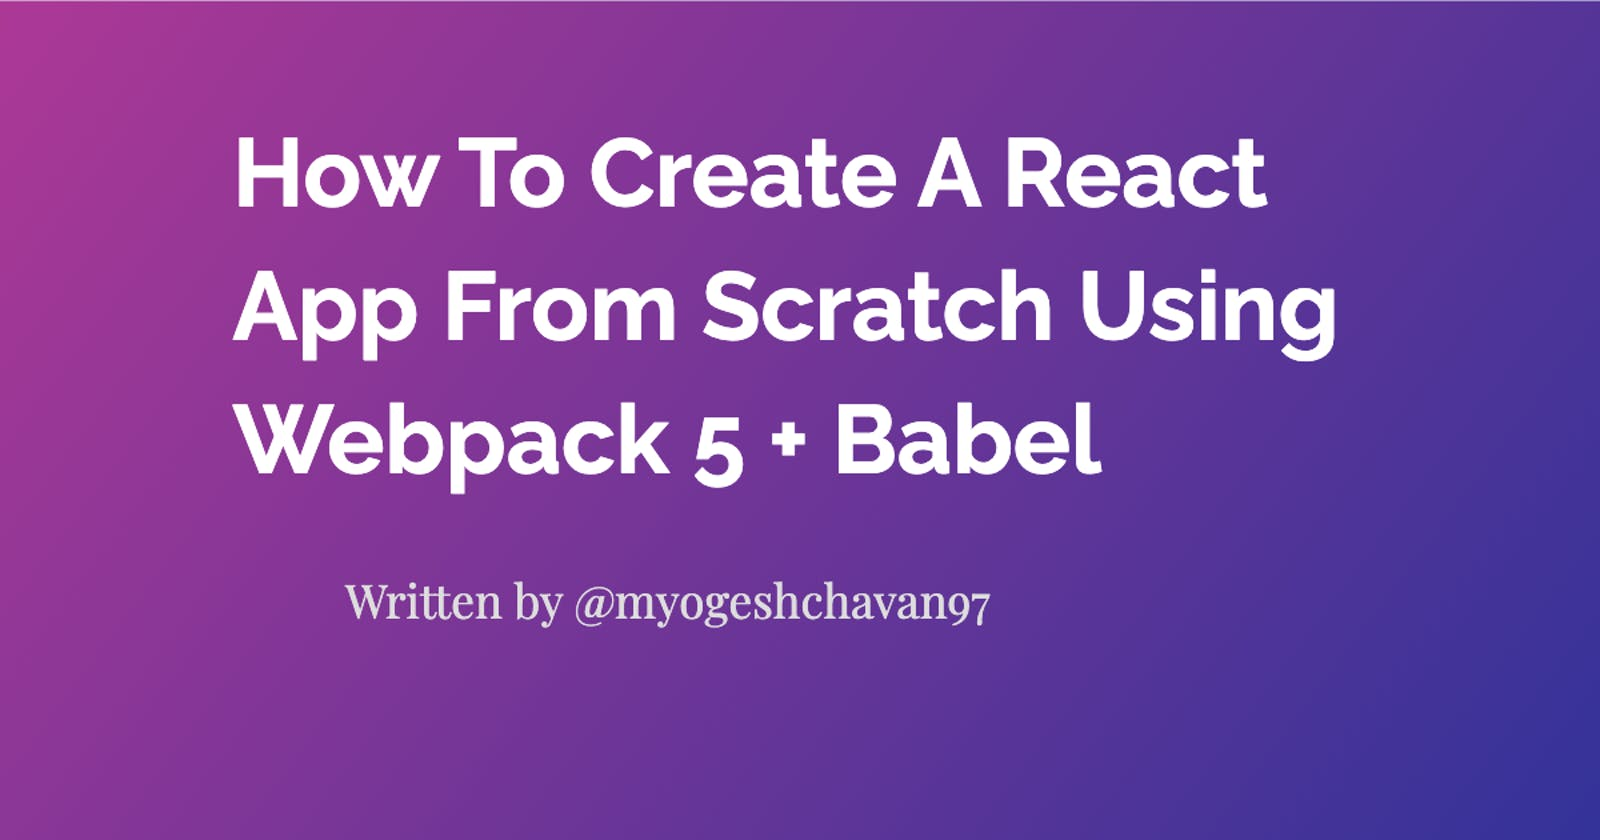 How To Create A React App From Scratch Using Webpack 5 + Babel